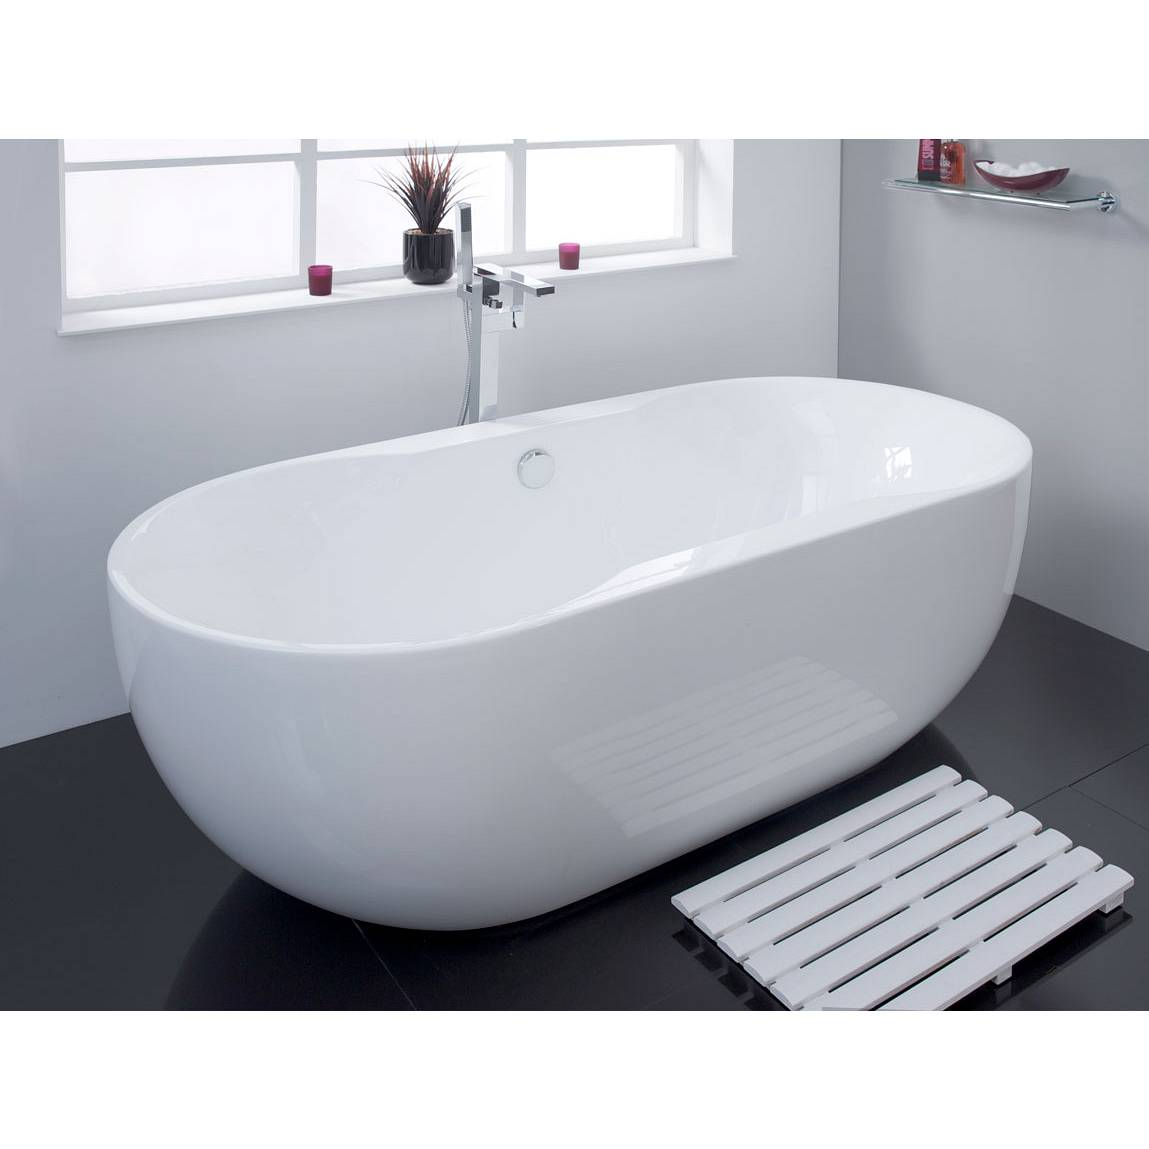 Pics Of Bathtubs Can A Salt Bath A Day Keep Weight Away Colette Baron Reid